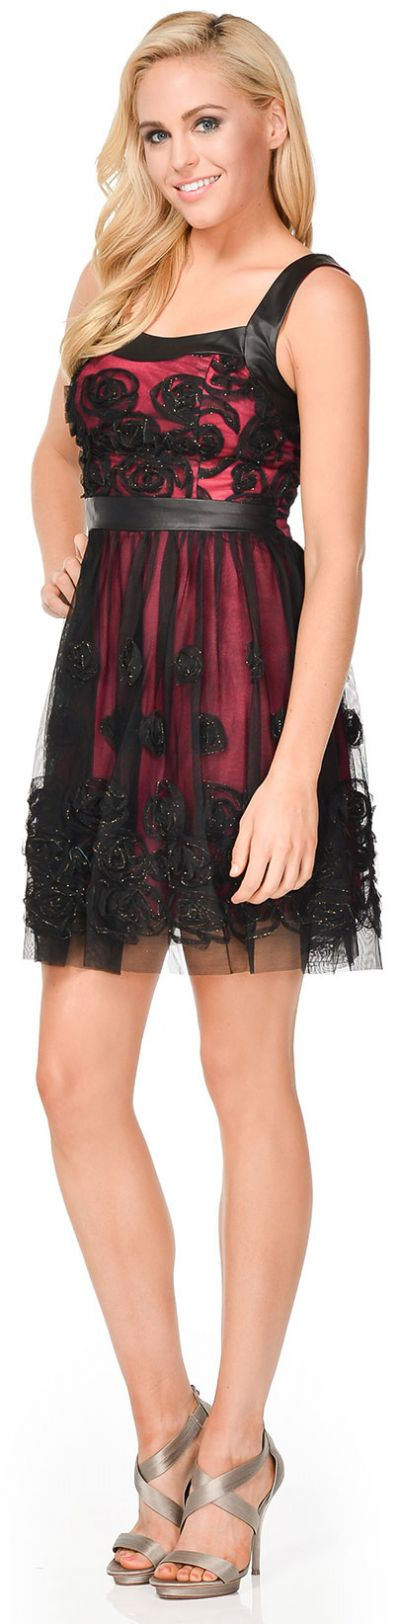 Rosette Pattern Short Formal Party Dress in Mesh